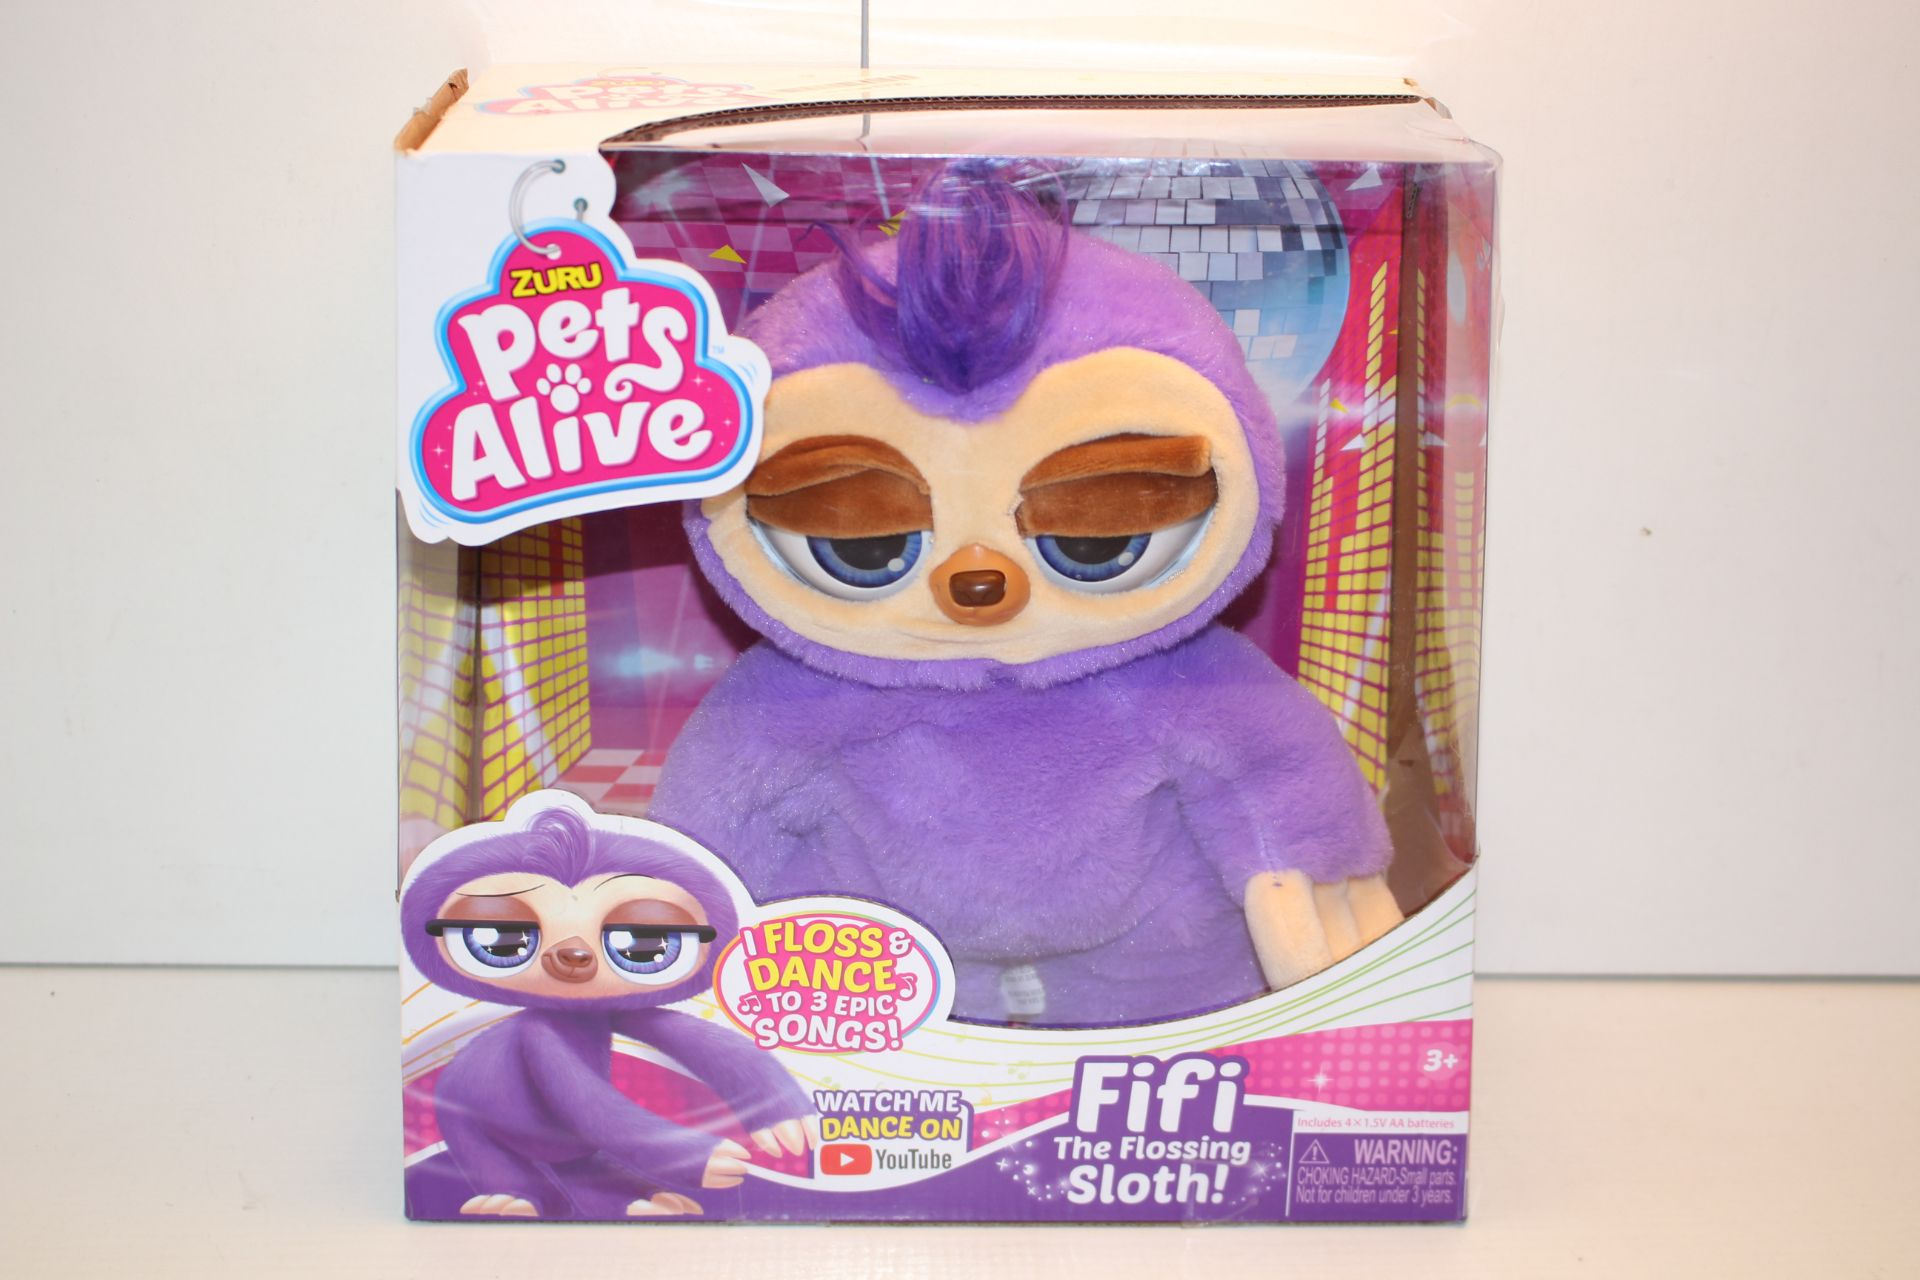 BOXED ZURU PETS ALIVE FIFI THE FLOSSING SLOTH!Condition ReportAppraisal Available on Request- All